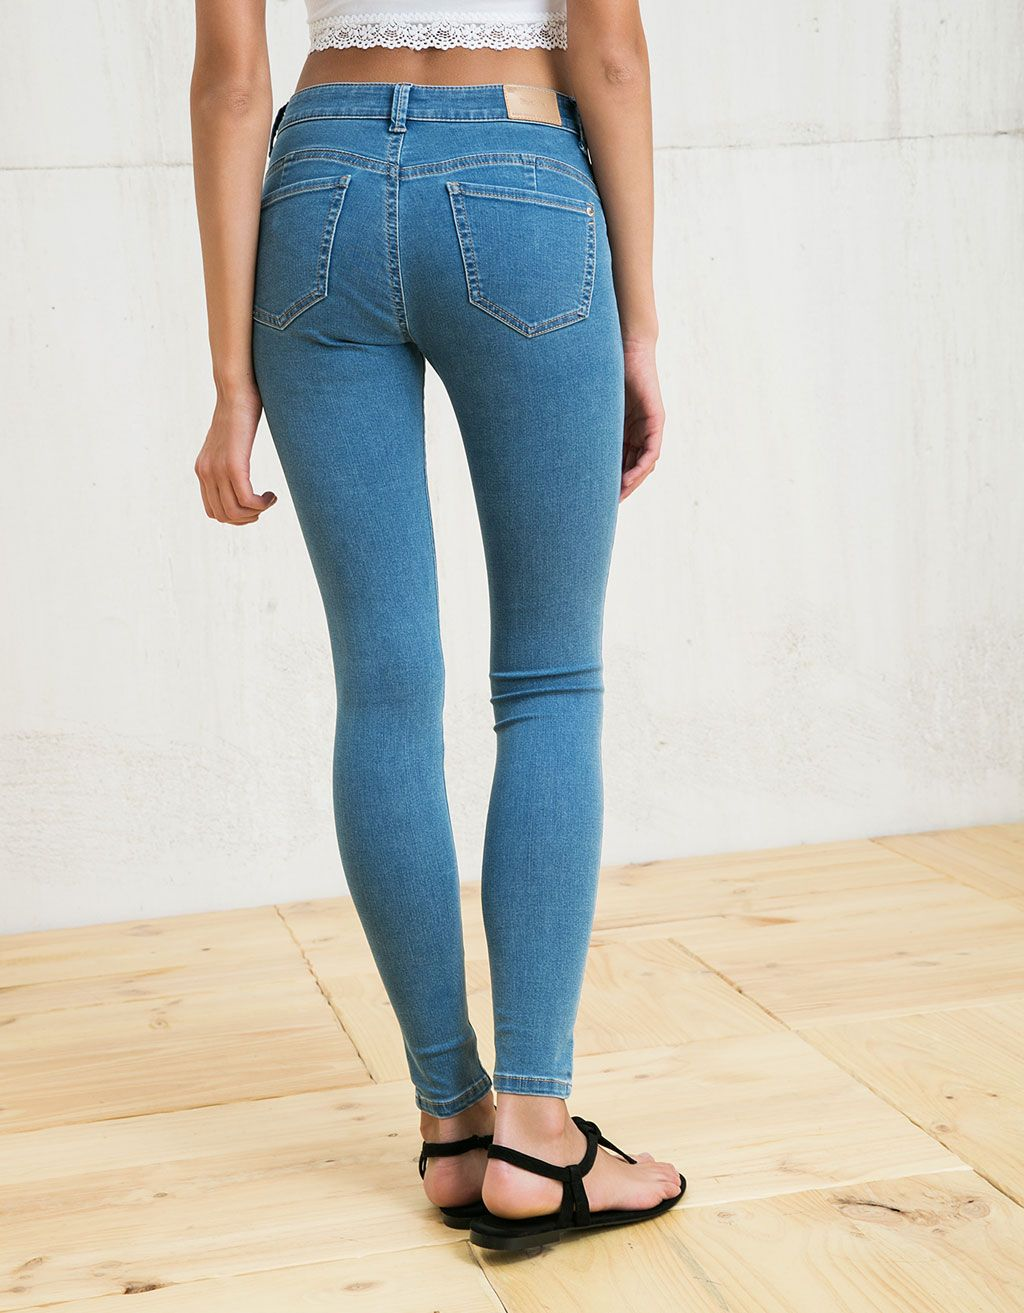 c0590657e5e BSK push up jeans | my must haves | Jeans, Pants, Skinny jeans